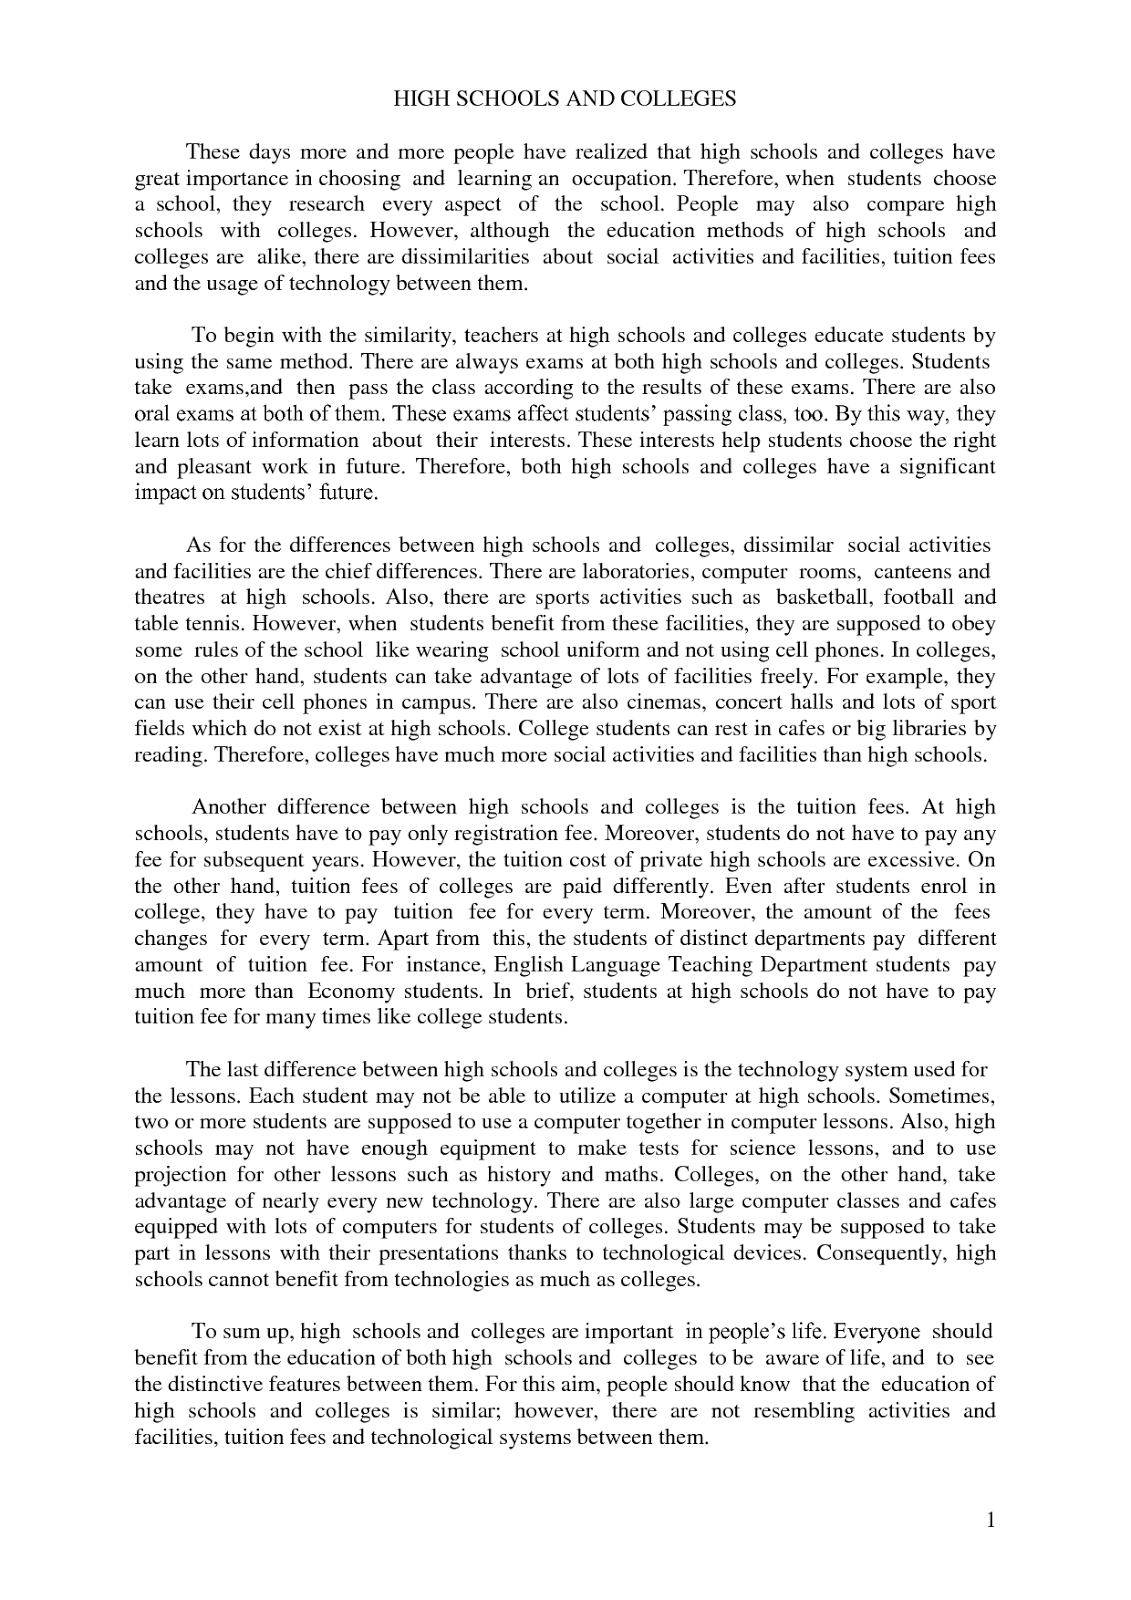 comparative essay between firstlove and sex How to write a good comparative essay opposition to  against same sex  all writs my first love reading essay difference between research.